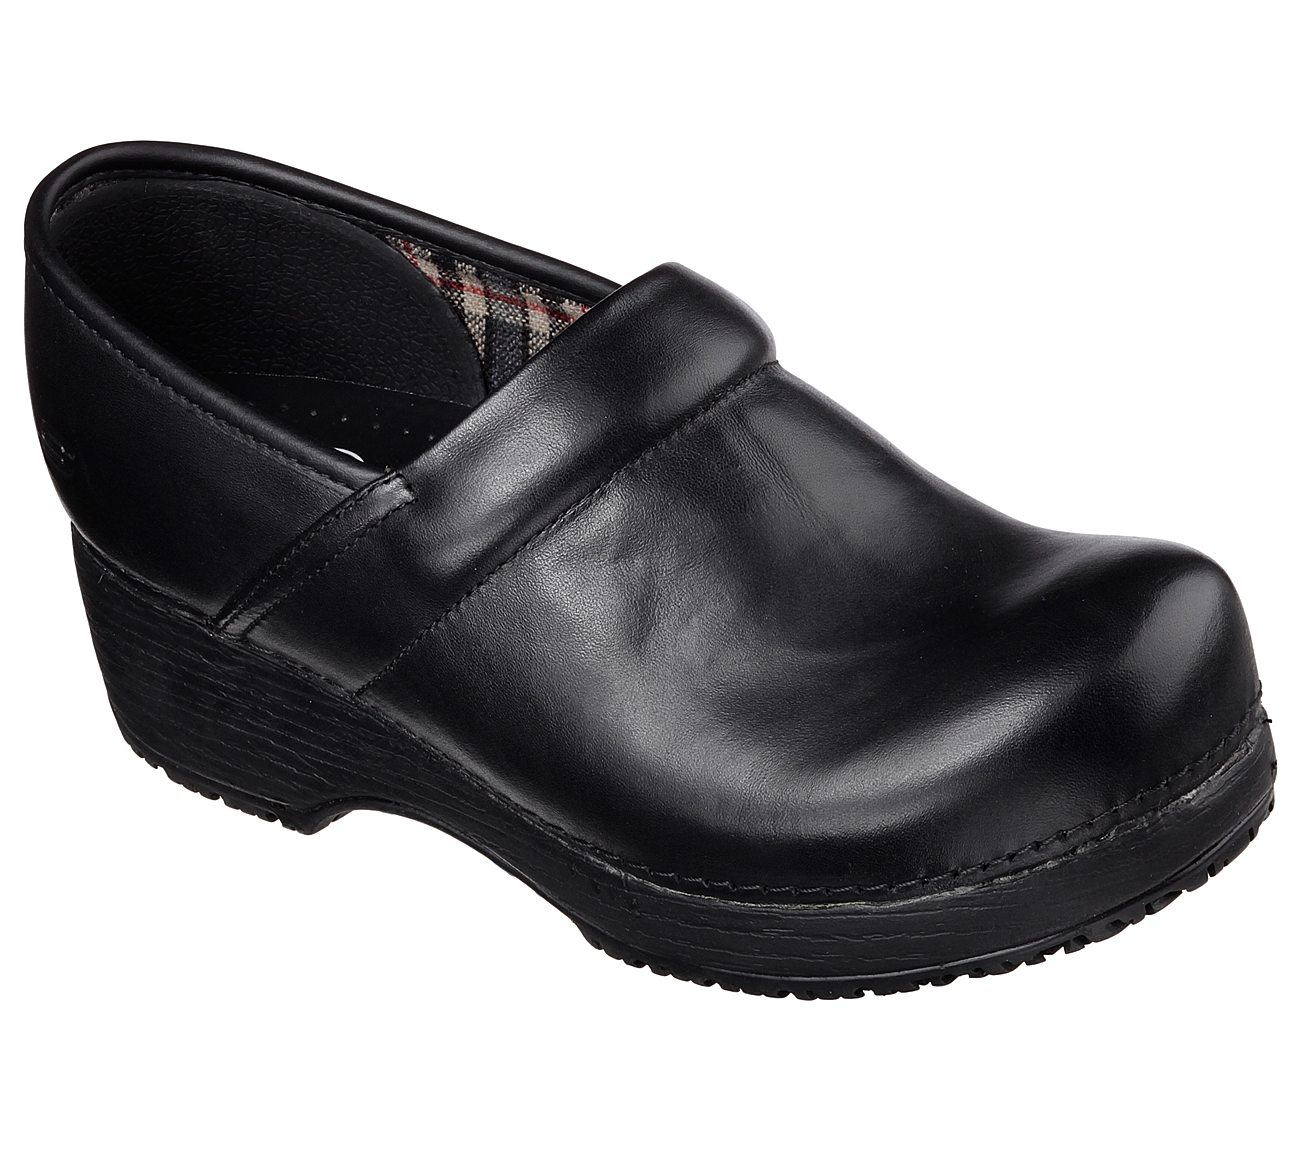 Womens Black Nursing Shoes